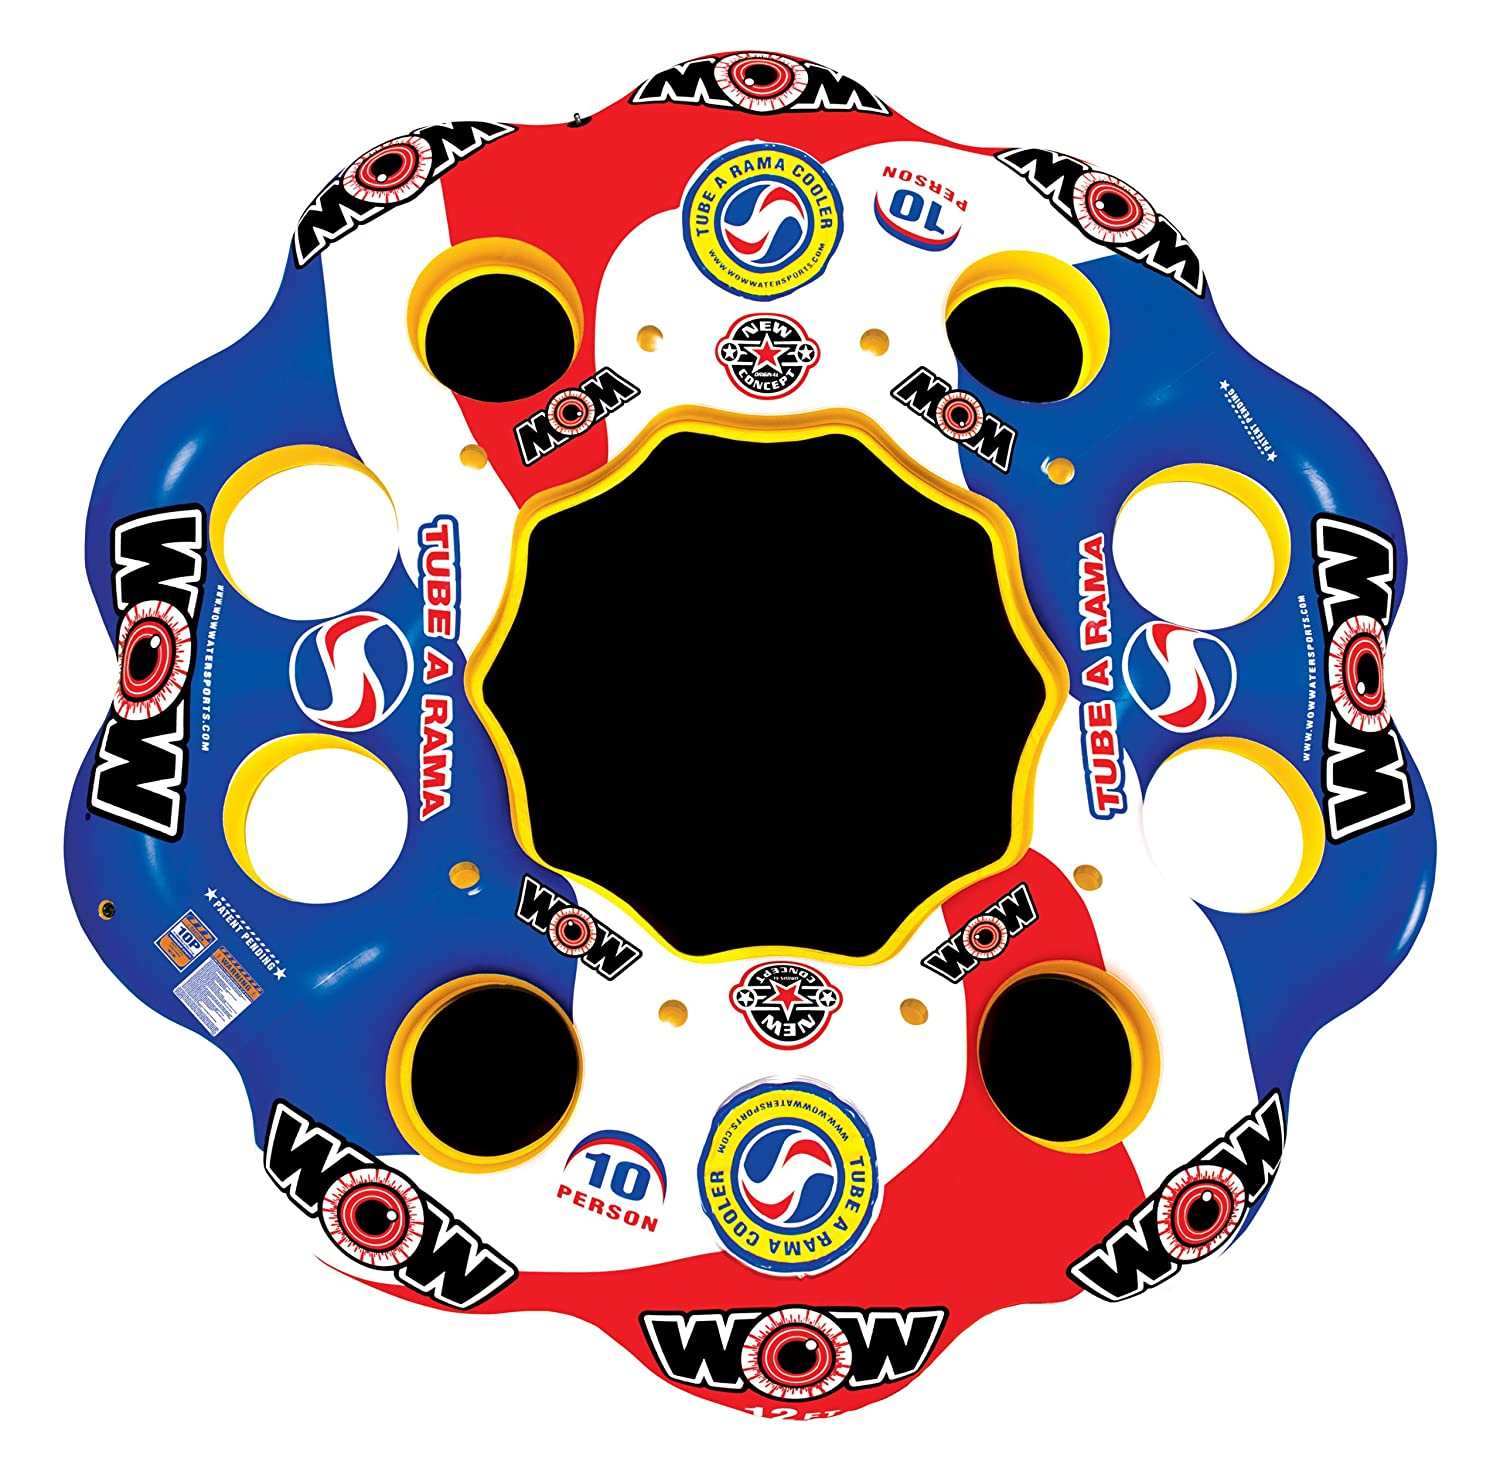 WOW World of Watersports, 13-2060 Tube A Rama, ten people inflatable floating island, 12-foot diameter